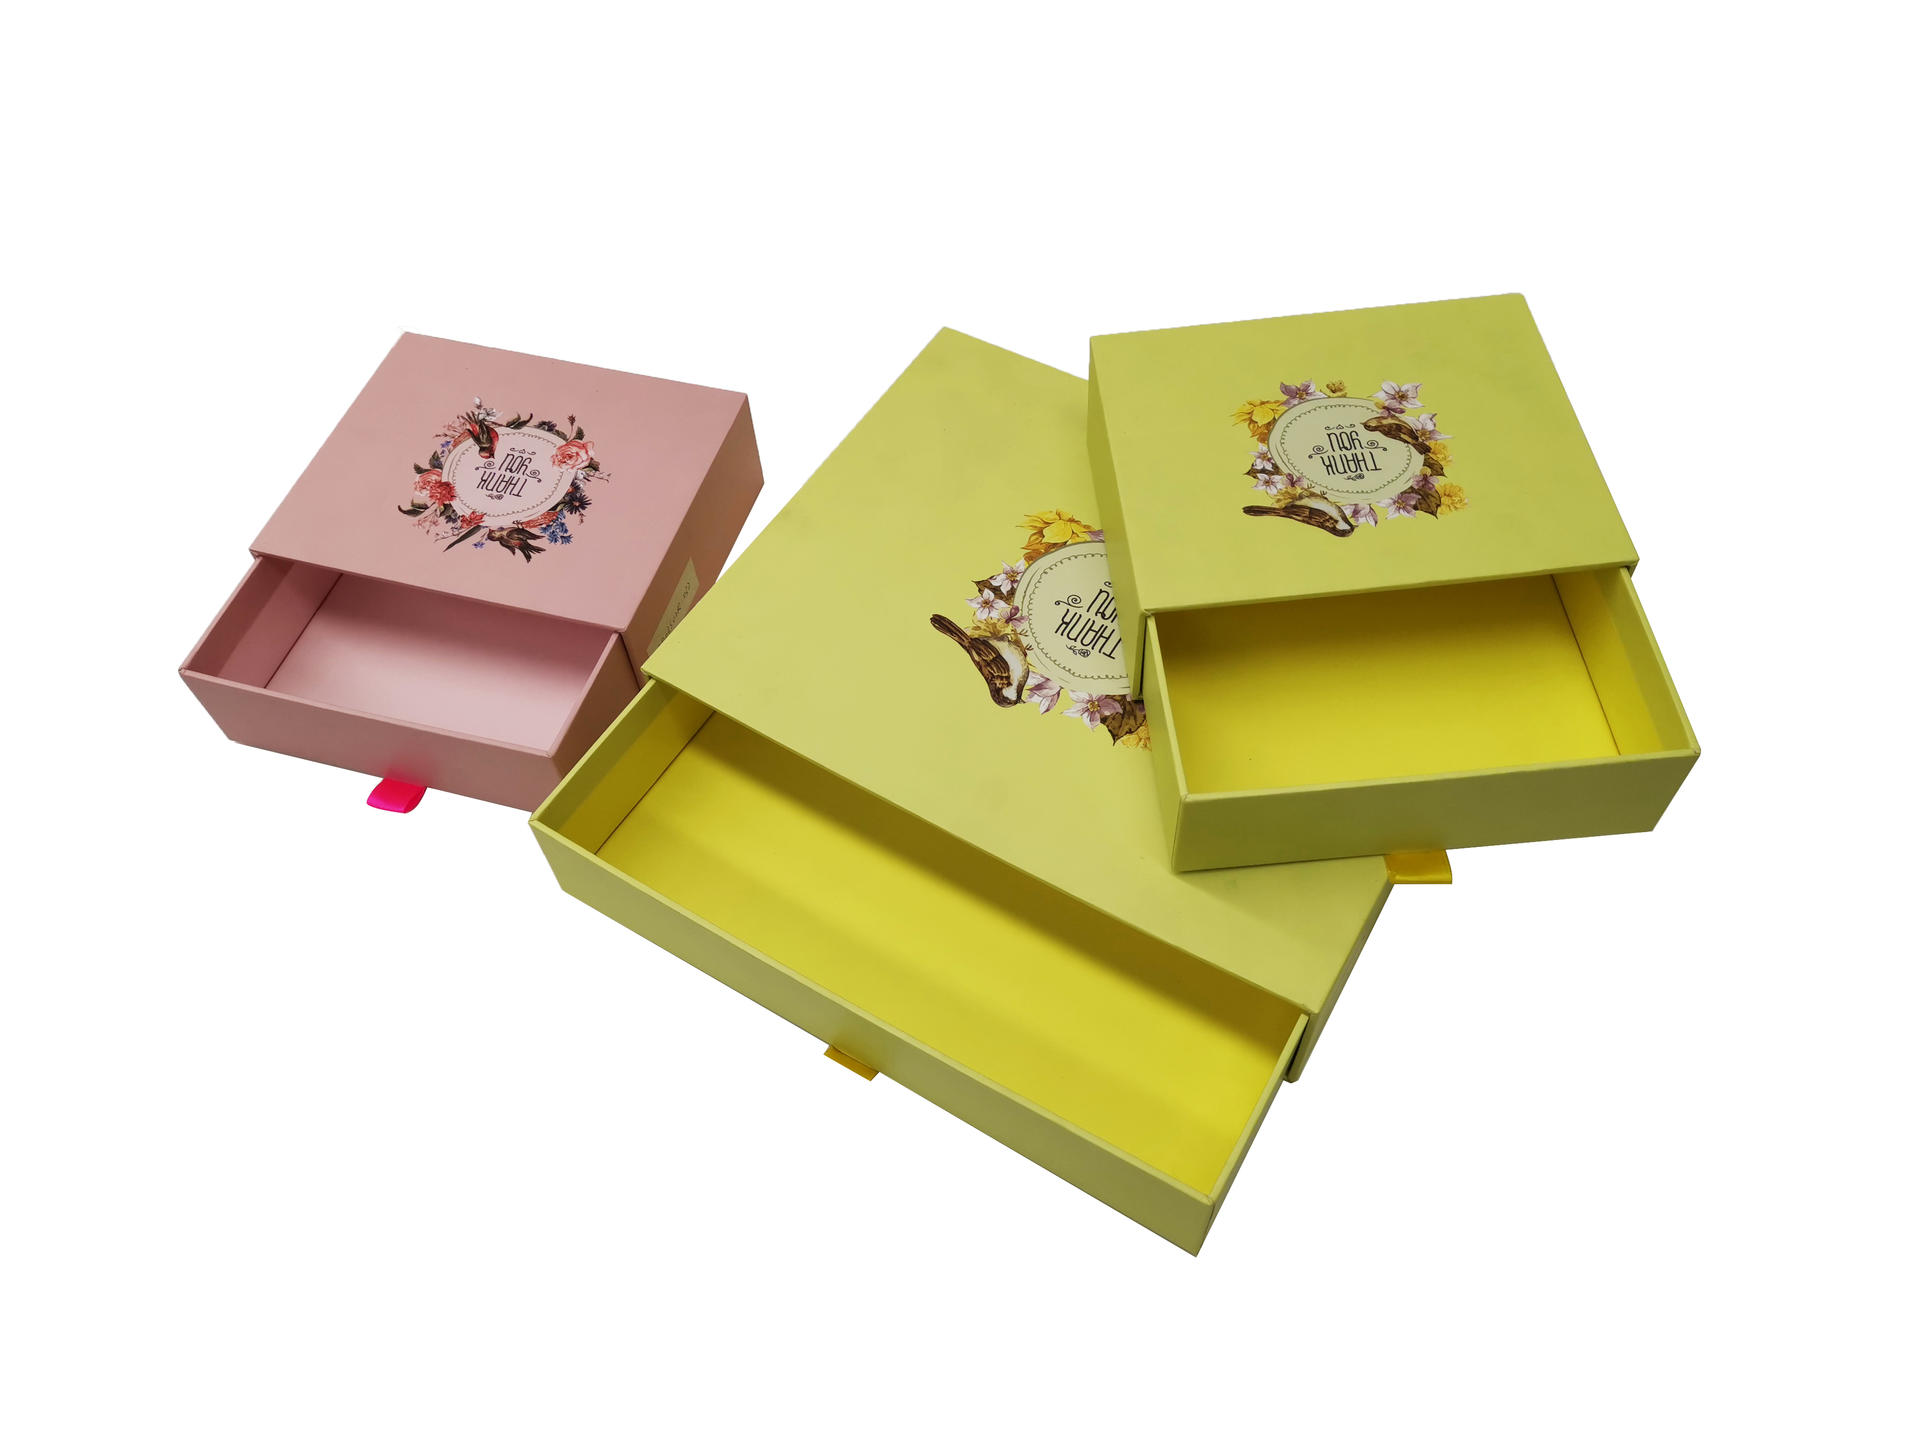 product-Dezheng-Rectangle A5 Cardboard Box Custom Book Packaging Paper Gift Box With Flip Lid-img-1